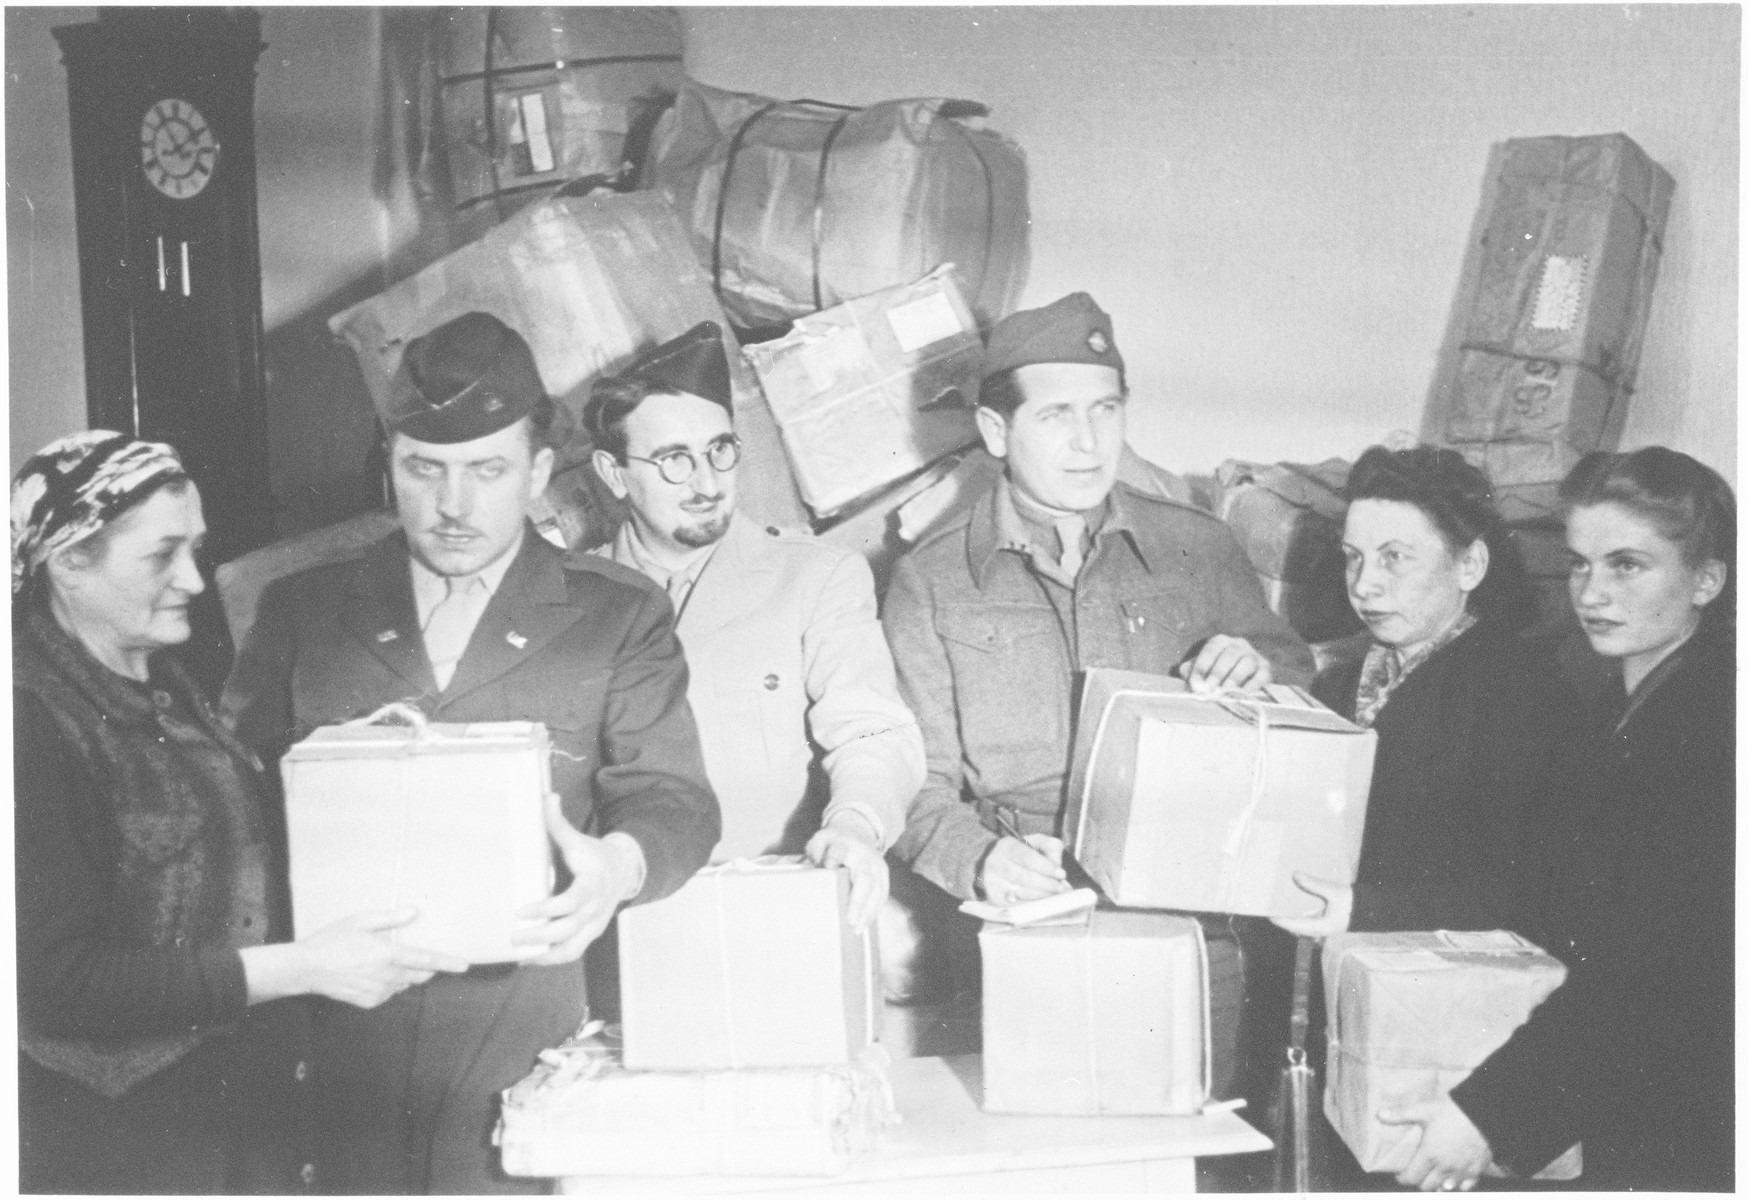 Rabbis Nathan Baruch (second from the left) and Aviezer Burstein (third from the left) deliver Passover supplies to Jewish displaced persons.